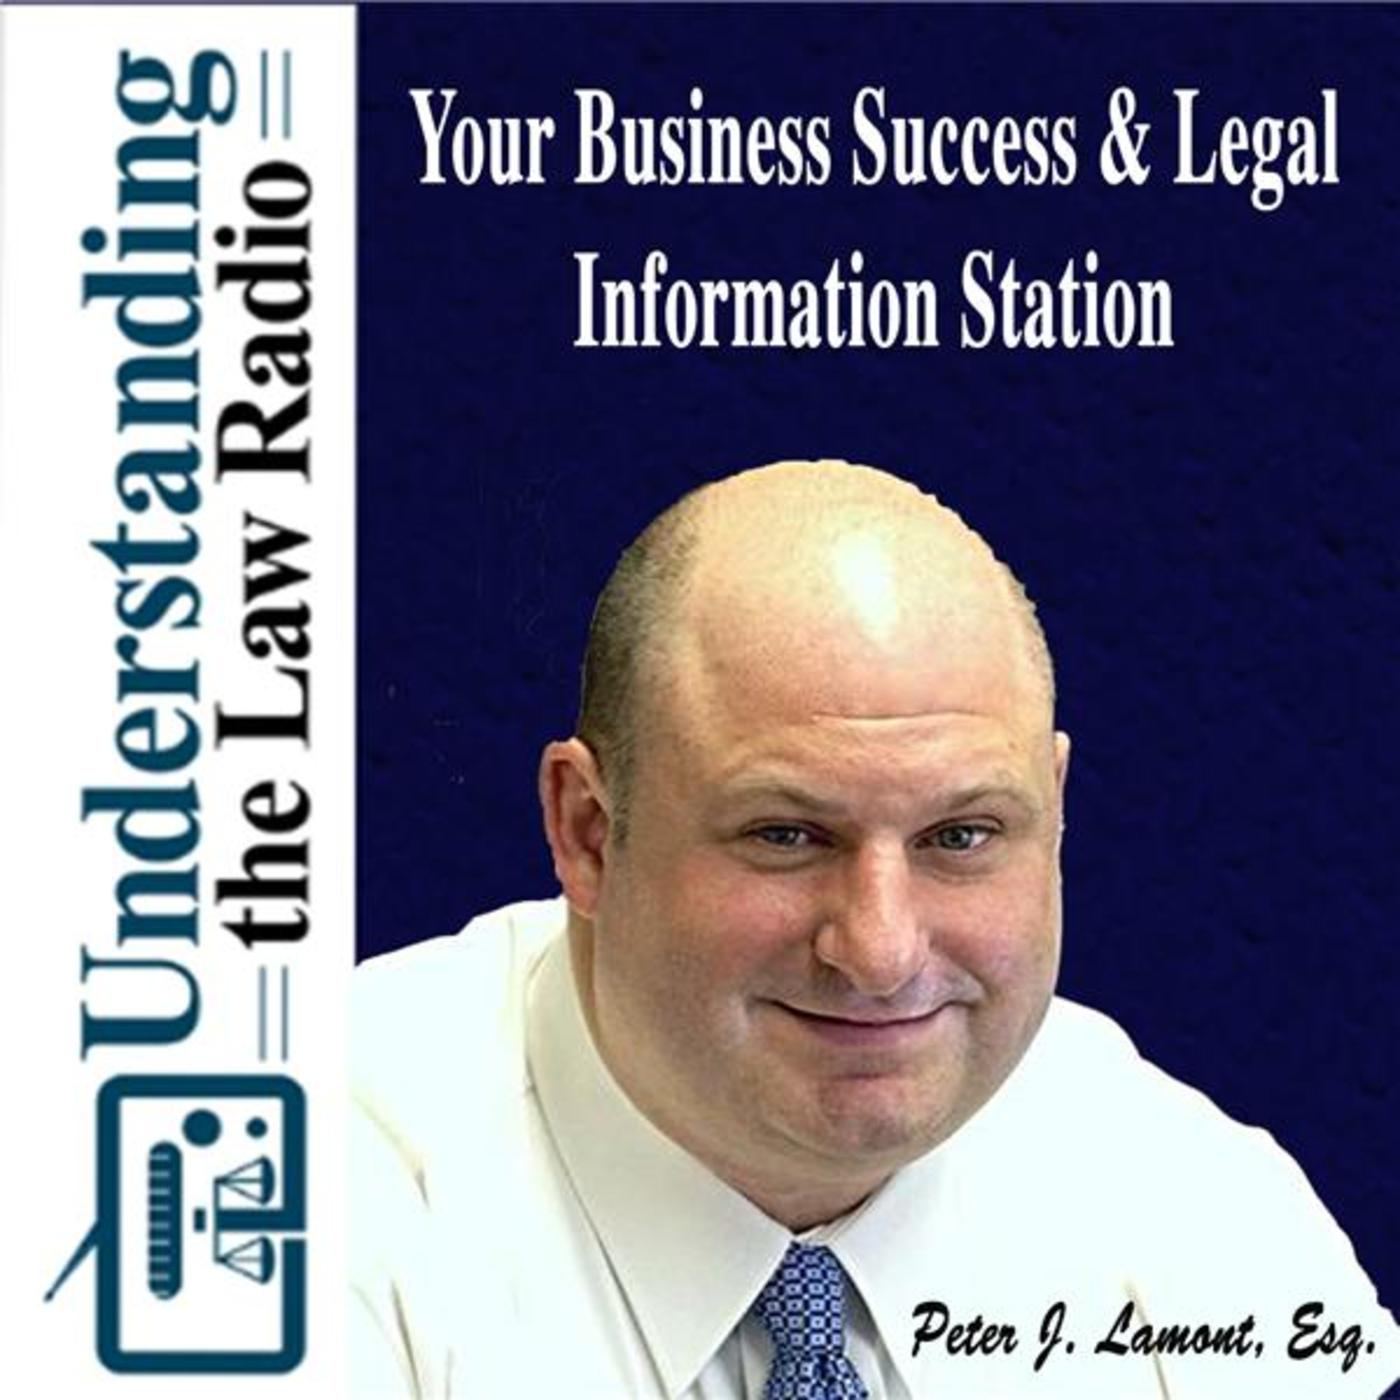 UTLRadio.com Legal & Business Self-Help Resource  Center